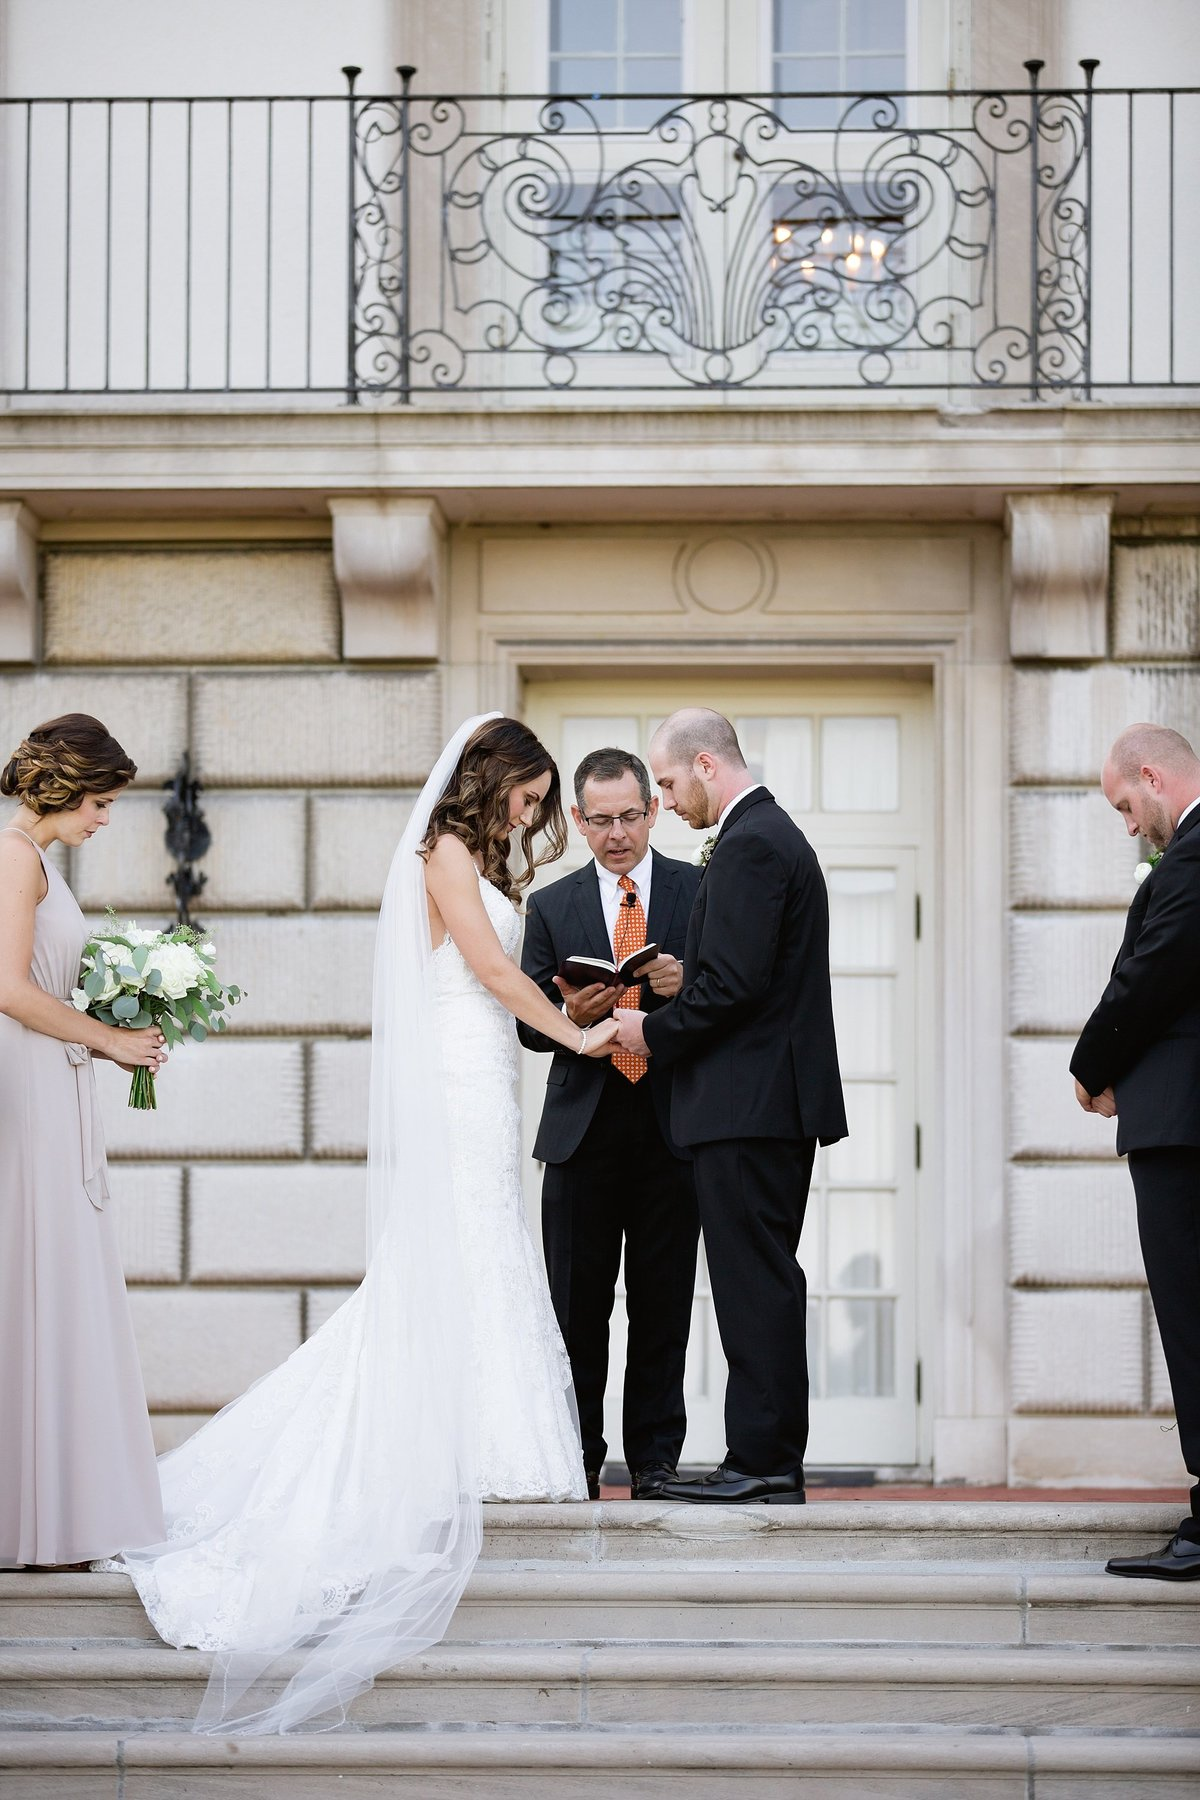 Shuster-Wedding-Grosse-Pointe-War-Memorial-Breanne-Rochelle-Photography89